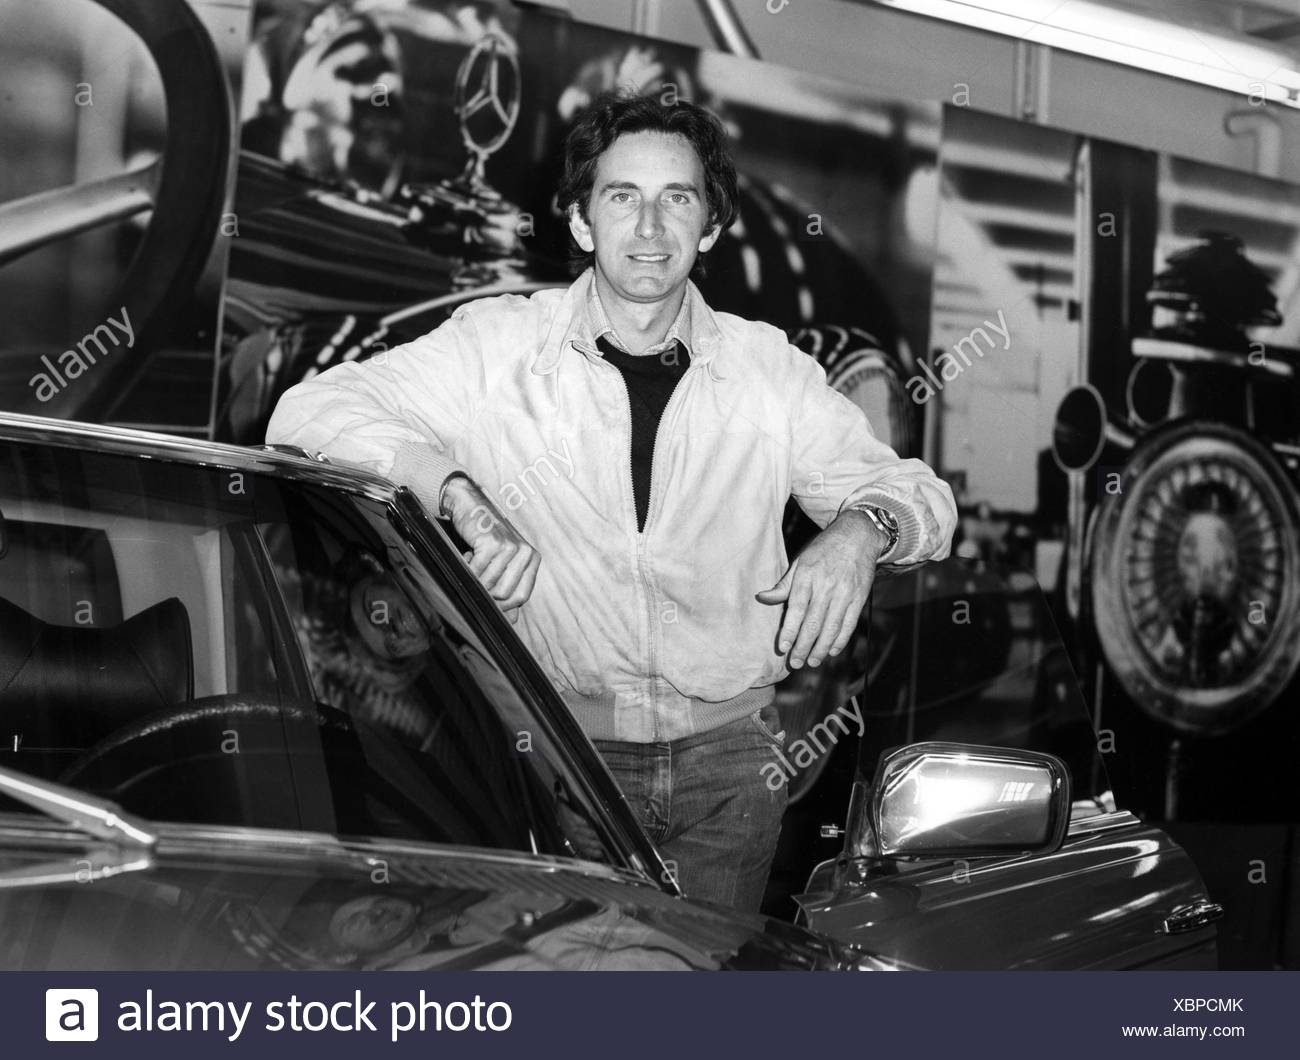 Watson, John Marshall 'Wattie', * 4.5.1946, Britisch racing driver, half length, 1990s, Additional-Rights-Clearances-NA - Stock Image